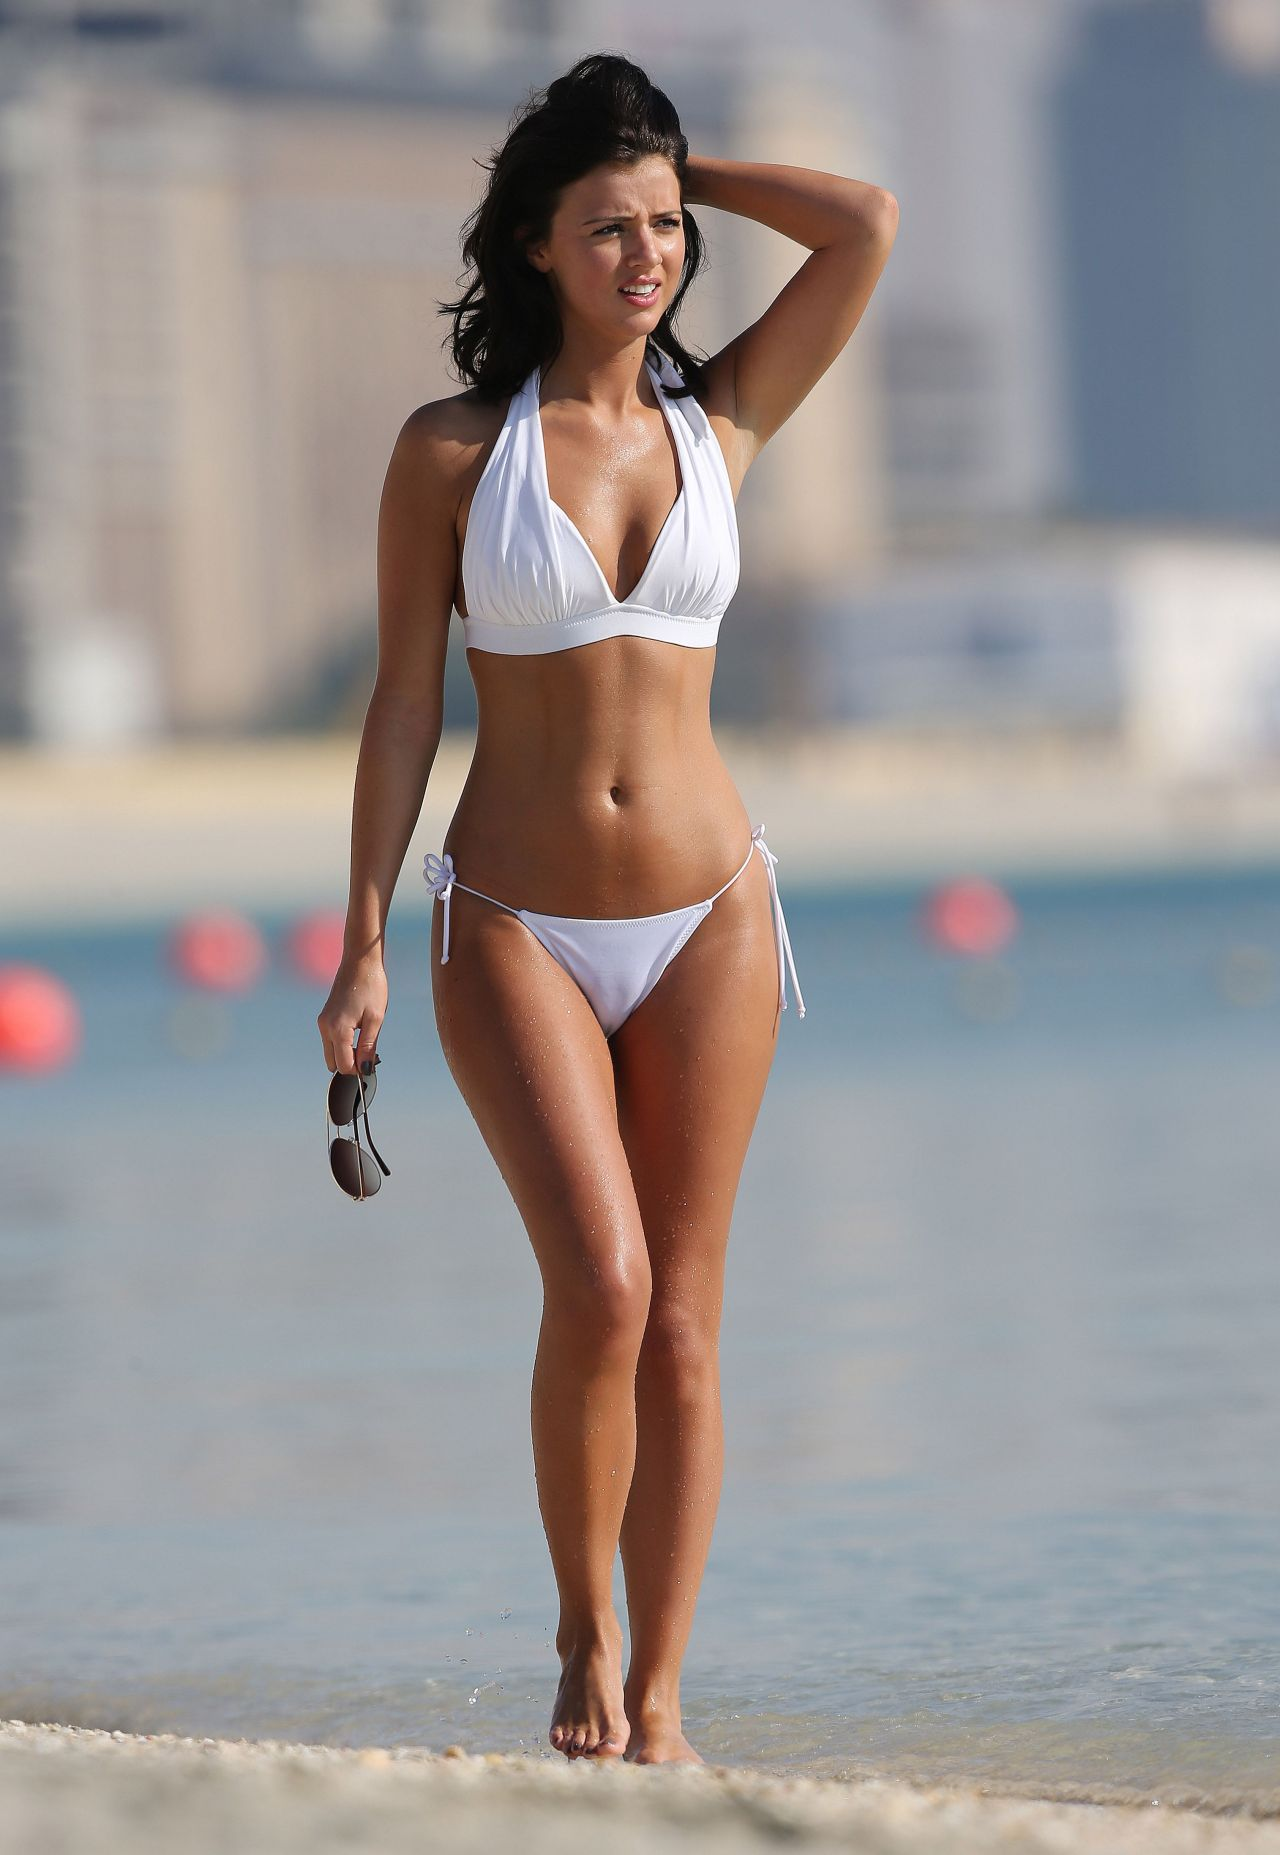 Lucy Mecklenburgh Hot In Bikini Dubai March 2014